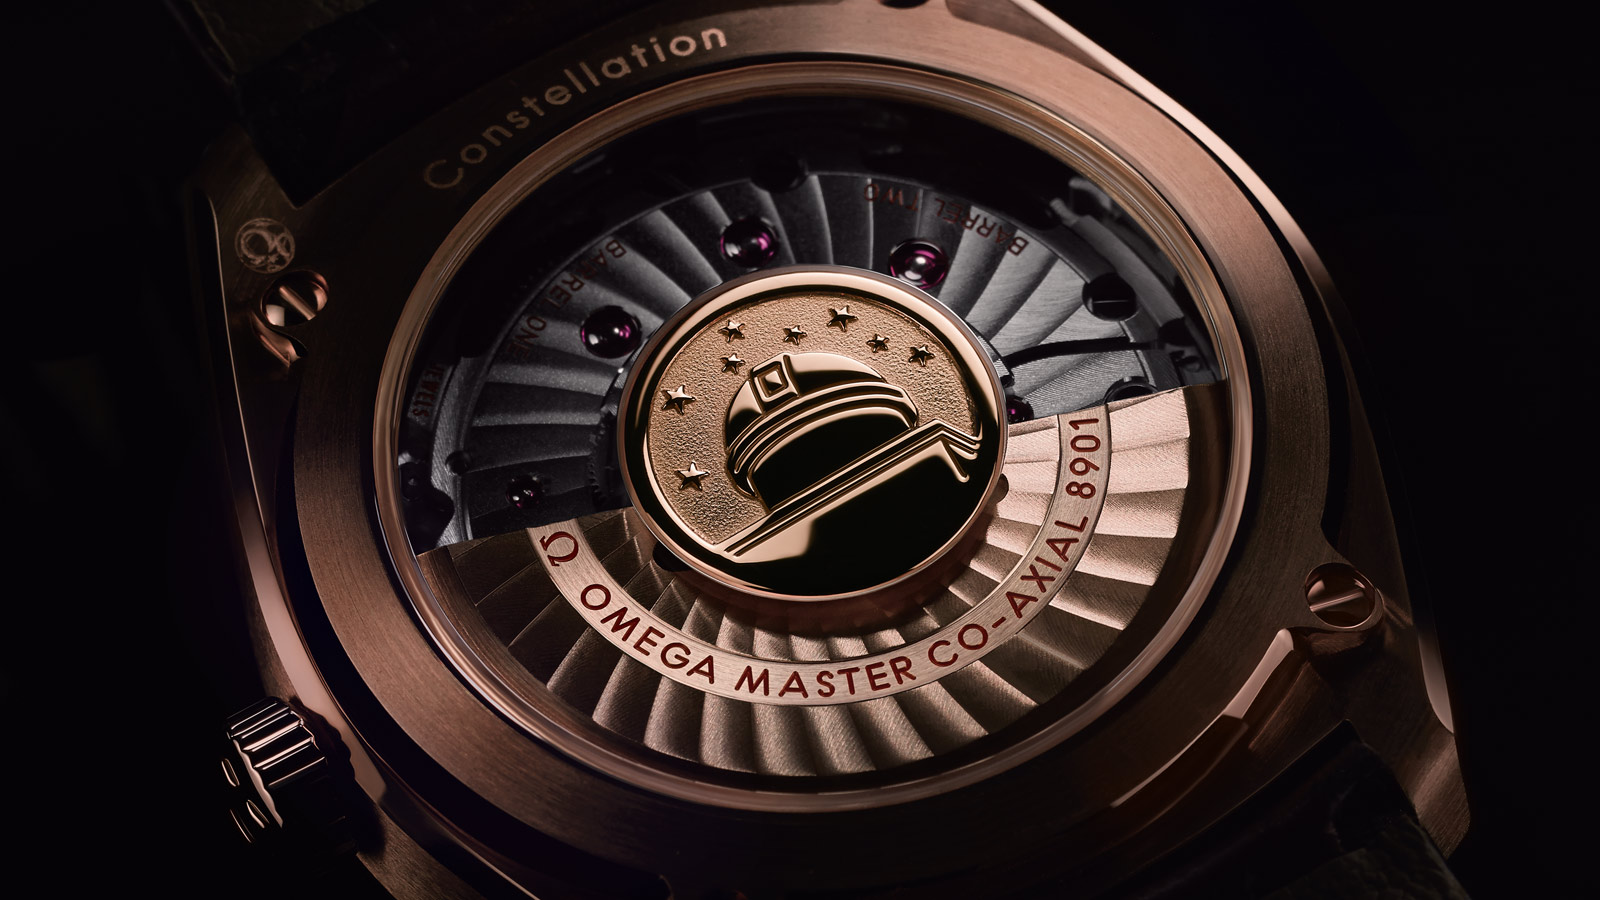 Constellation Globemaster Globemaster Omega Co‑Axial Master Chronometer 39 mm - 130.53.39.21.02.001 - Visualizzare 2